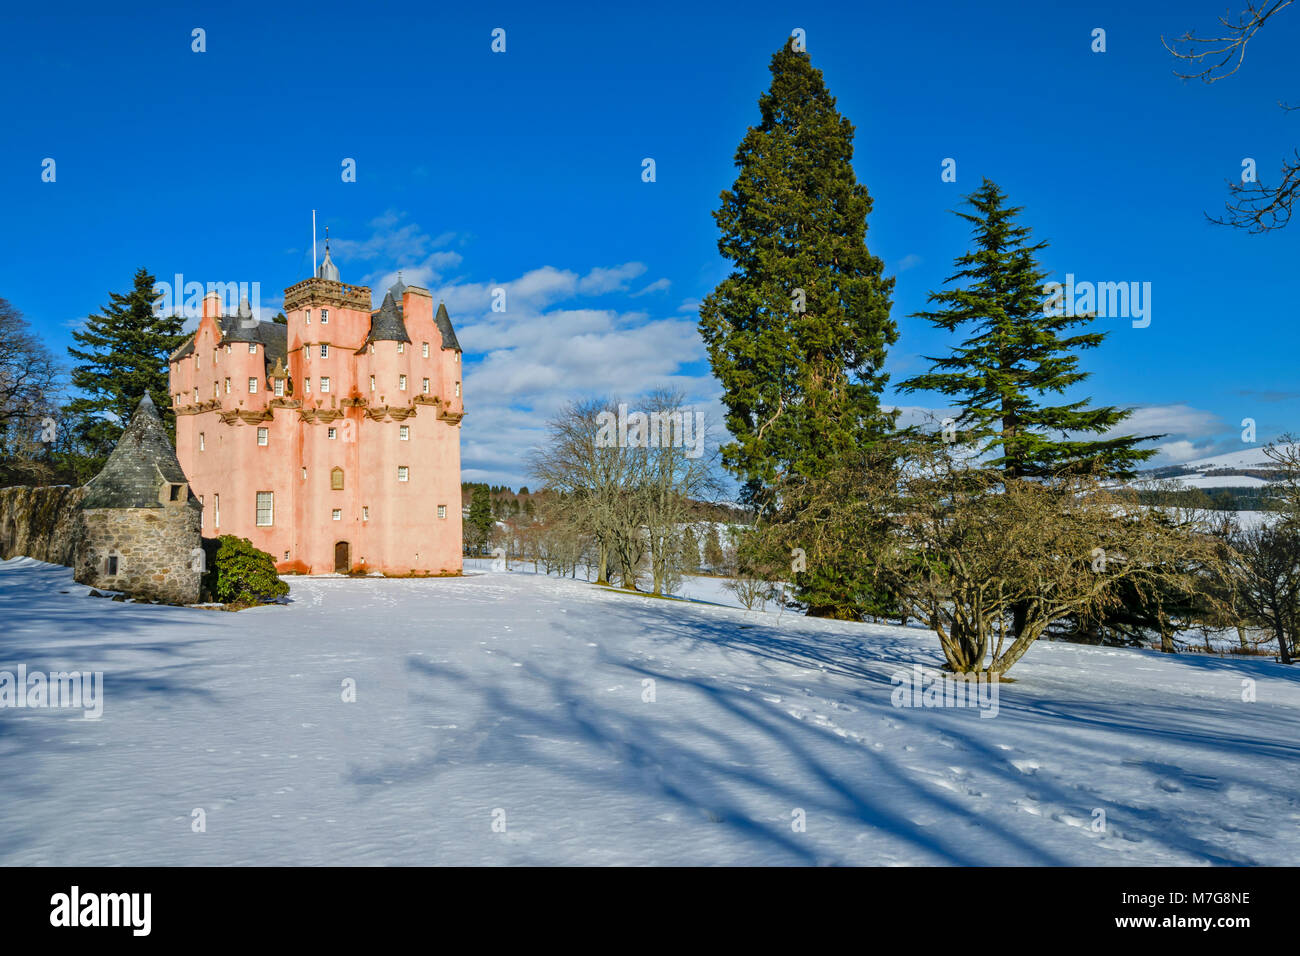 CRAIGIEVAR CASTLE ABERDEENSHIRE SCOTLAND BLUE SKY  THE PINK TOWER SURROUNDED BY EVERGREEN FIR TREES AND DEEP WINTER - Stock Image